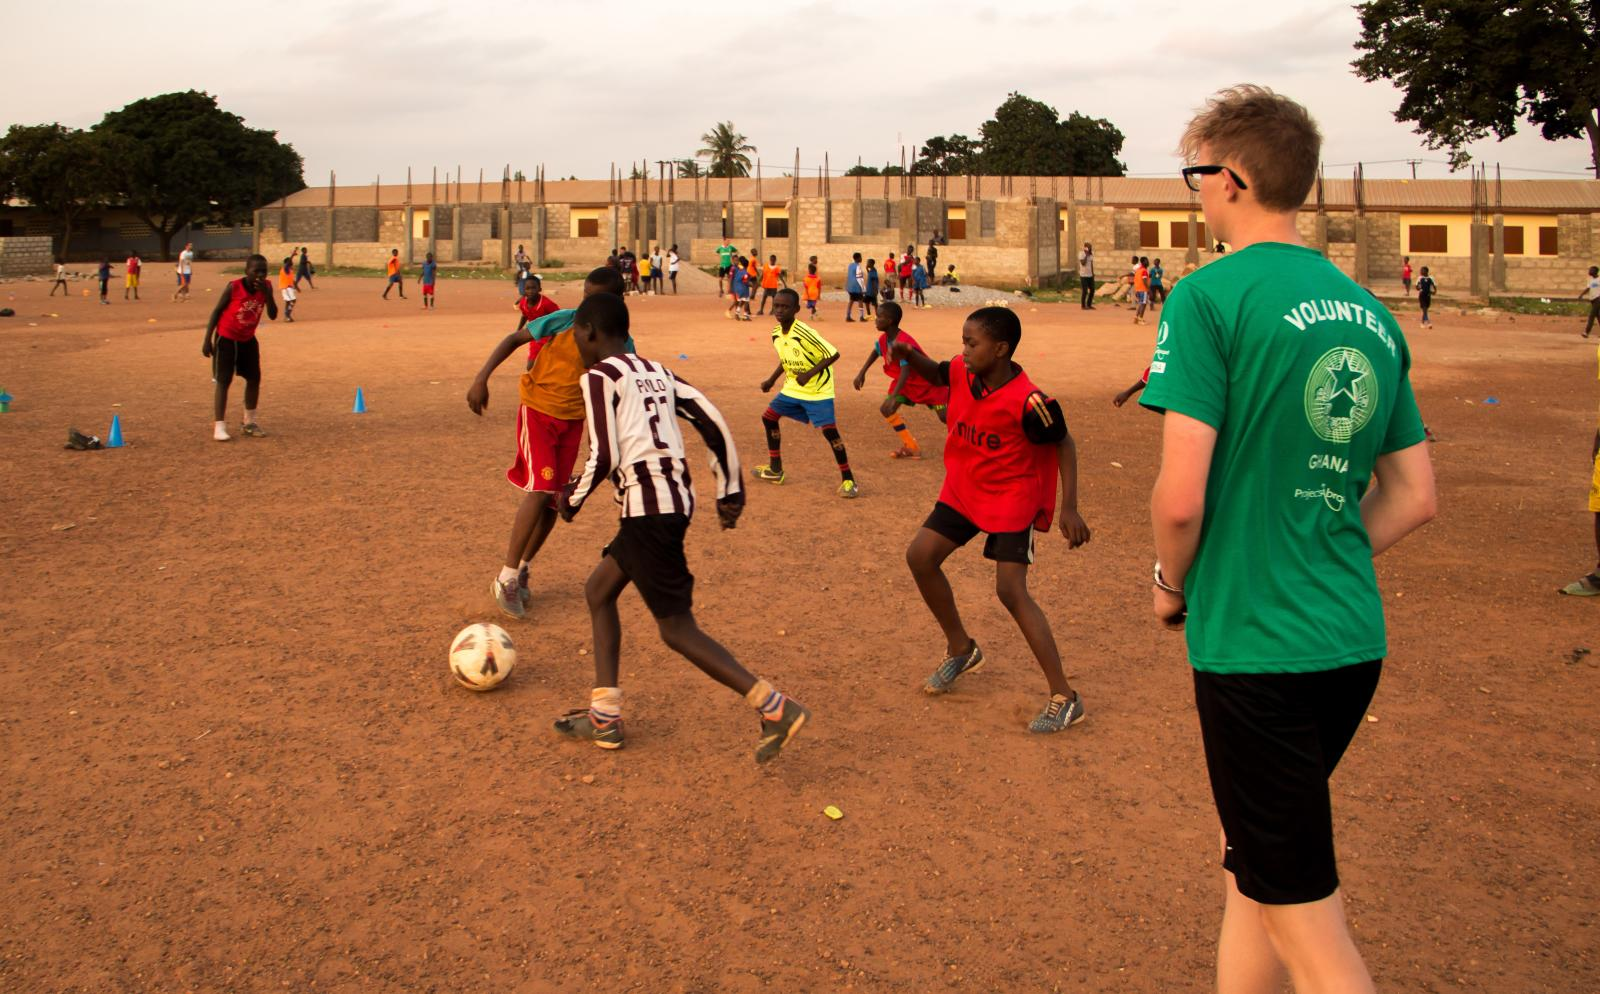 A sports player gains experience through volunteer soccer coaching in Ghana.